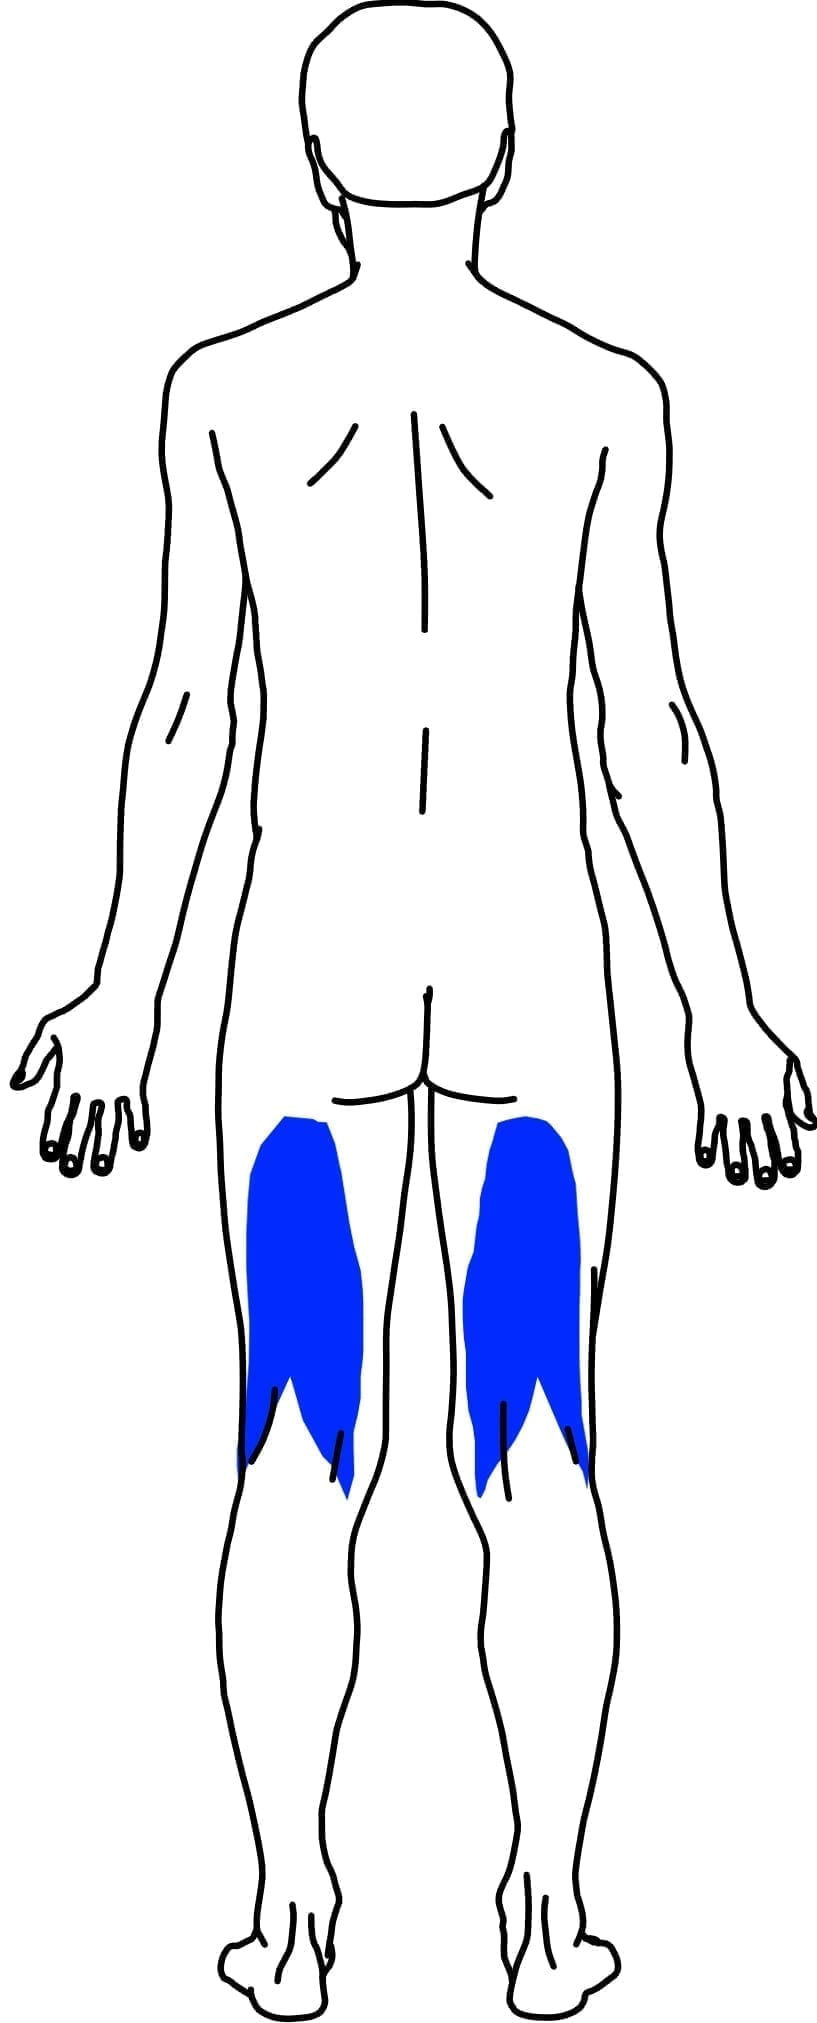 Hamstring muscles on the human body